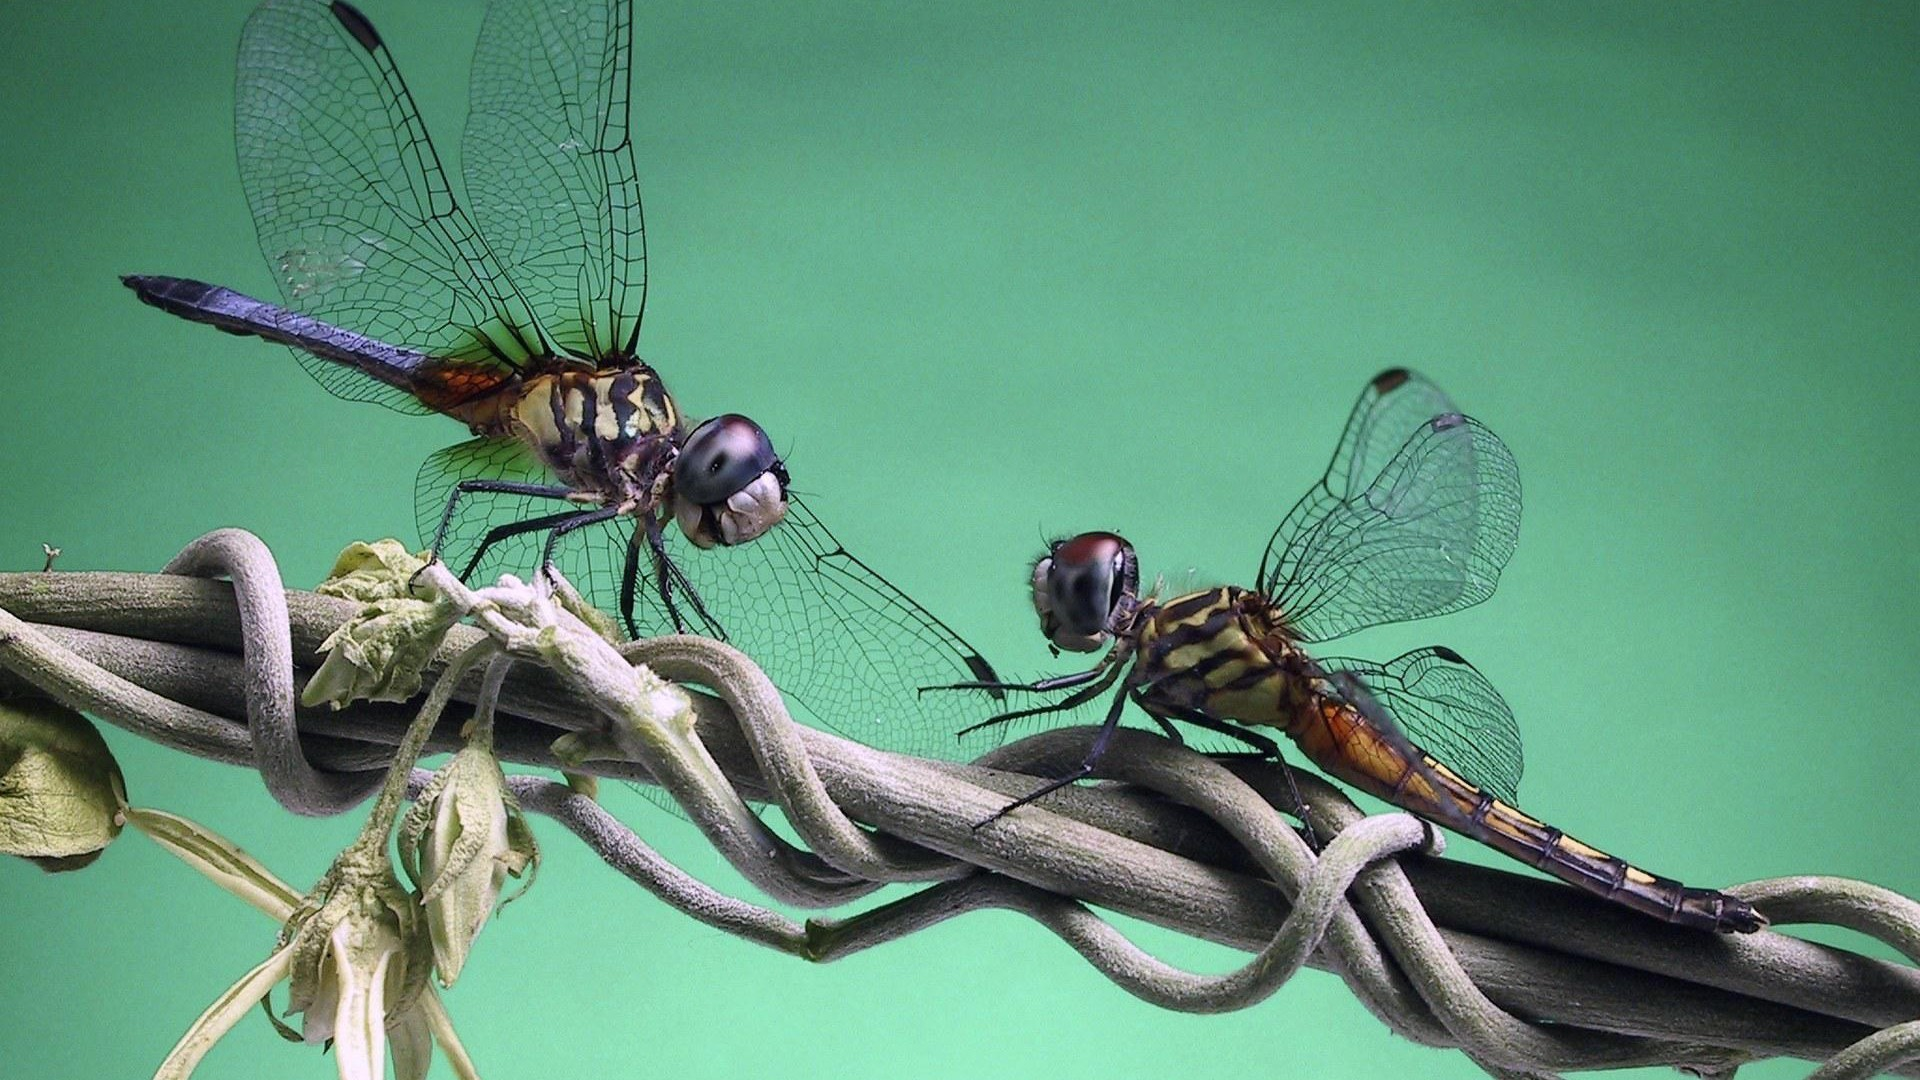 dragonfly-Computer-Desktop-Backgrounds-×-Dragonfly-Pictures-Wa-wallpaper-wp3804897